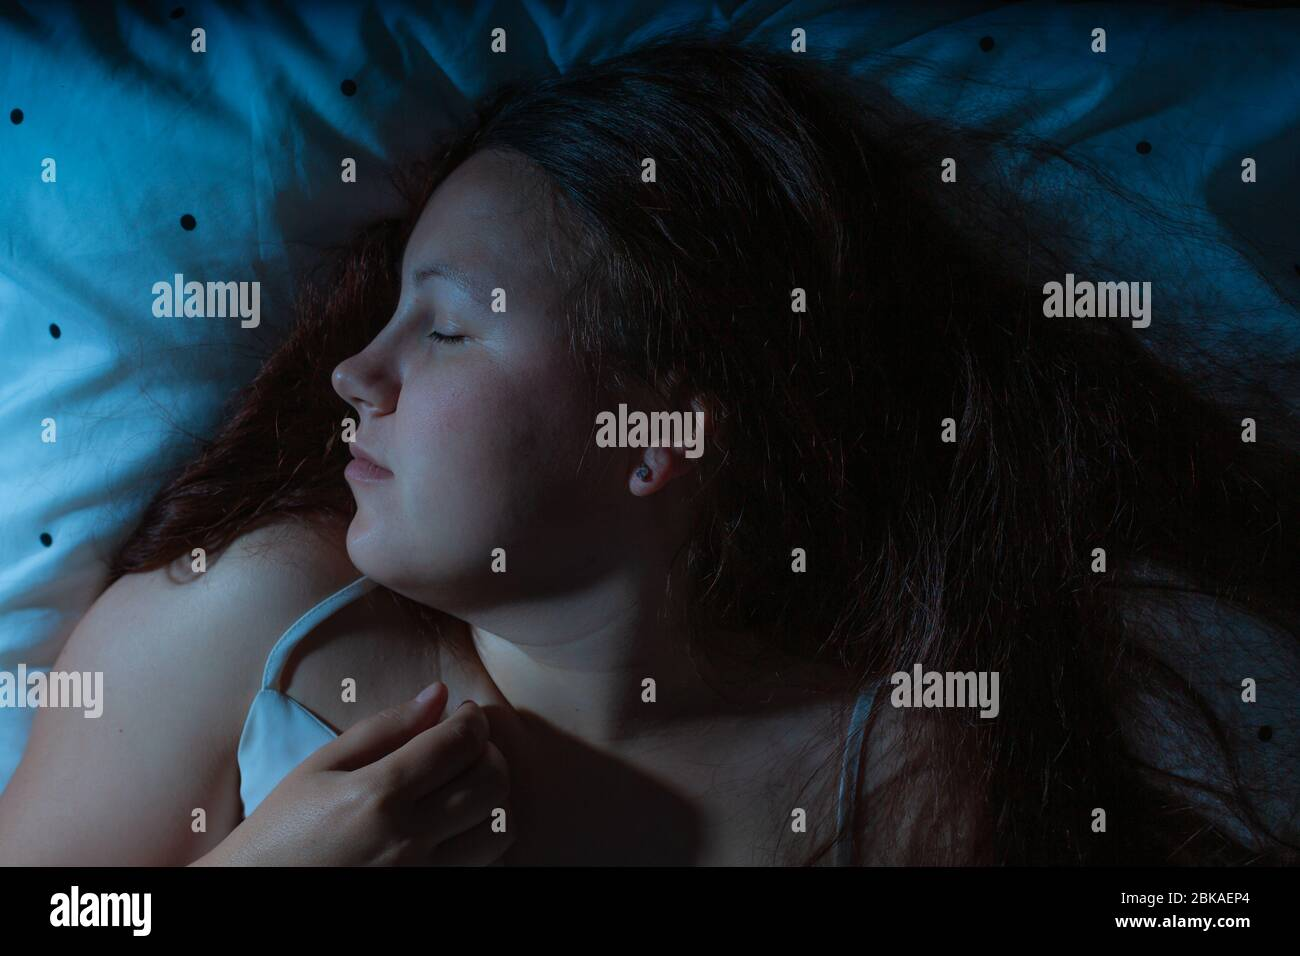 Top view of young woman sleeping cozily on a bed at night, blue nightly colours Stock Photo